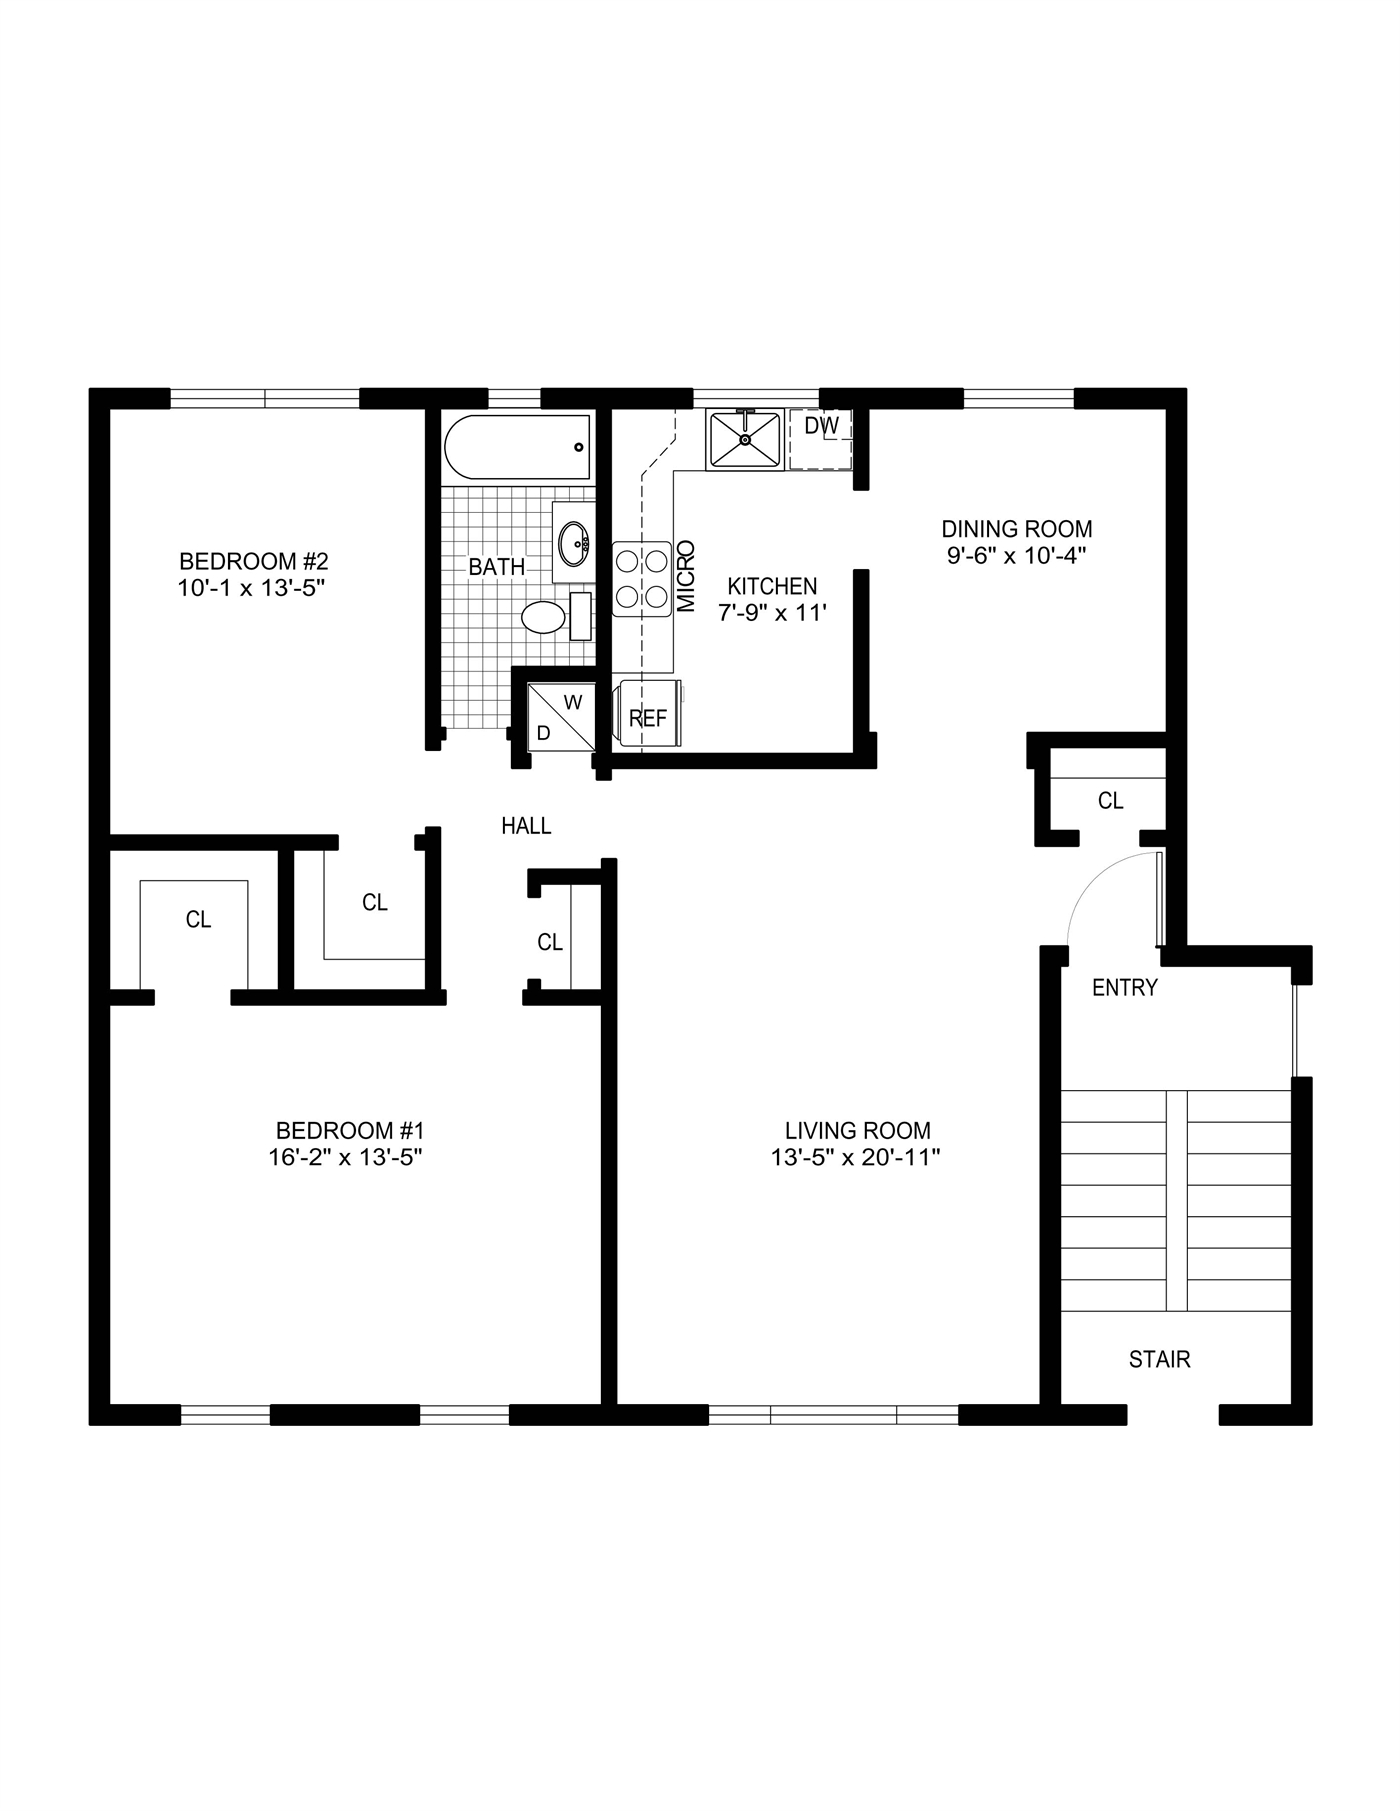 Simple House Designs And Floor Plans Simple House Design Housing, Easy House Blueprints